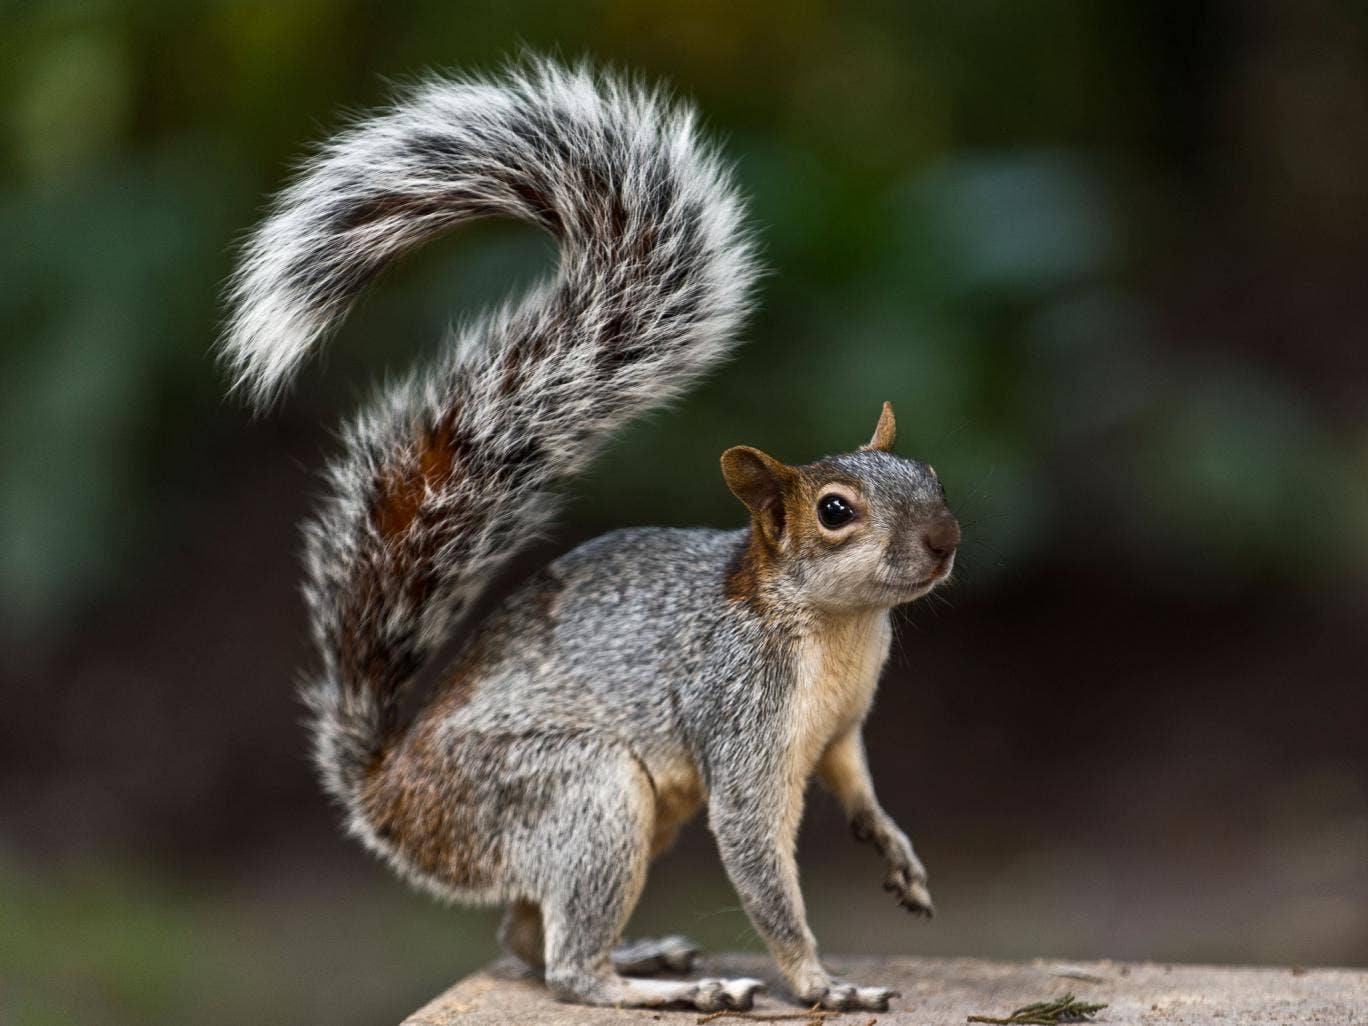 Scunthorpe United have asked fans not to dress up as squirrel's ahead of former manager Alan Knill's return to the club